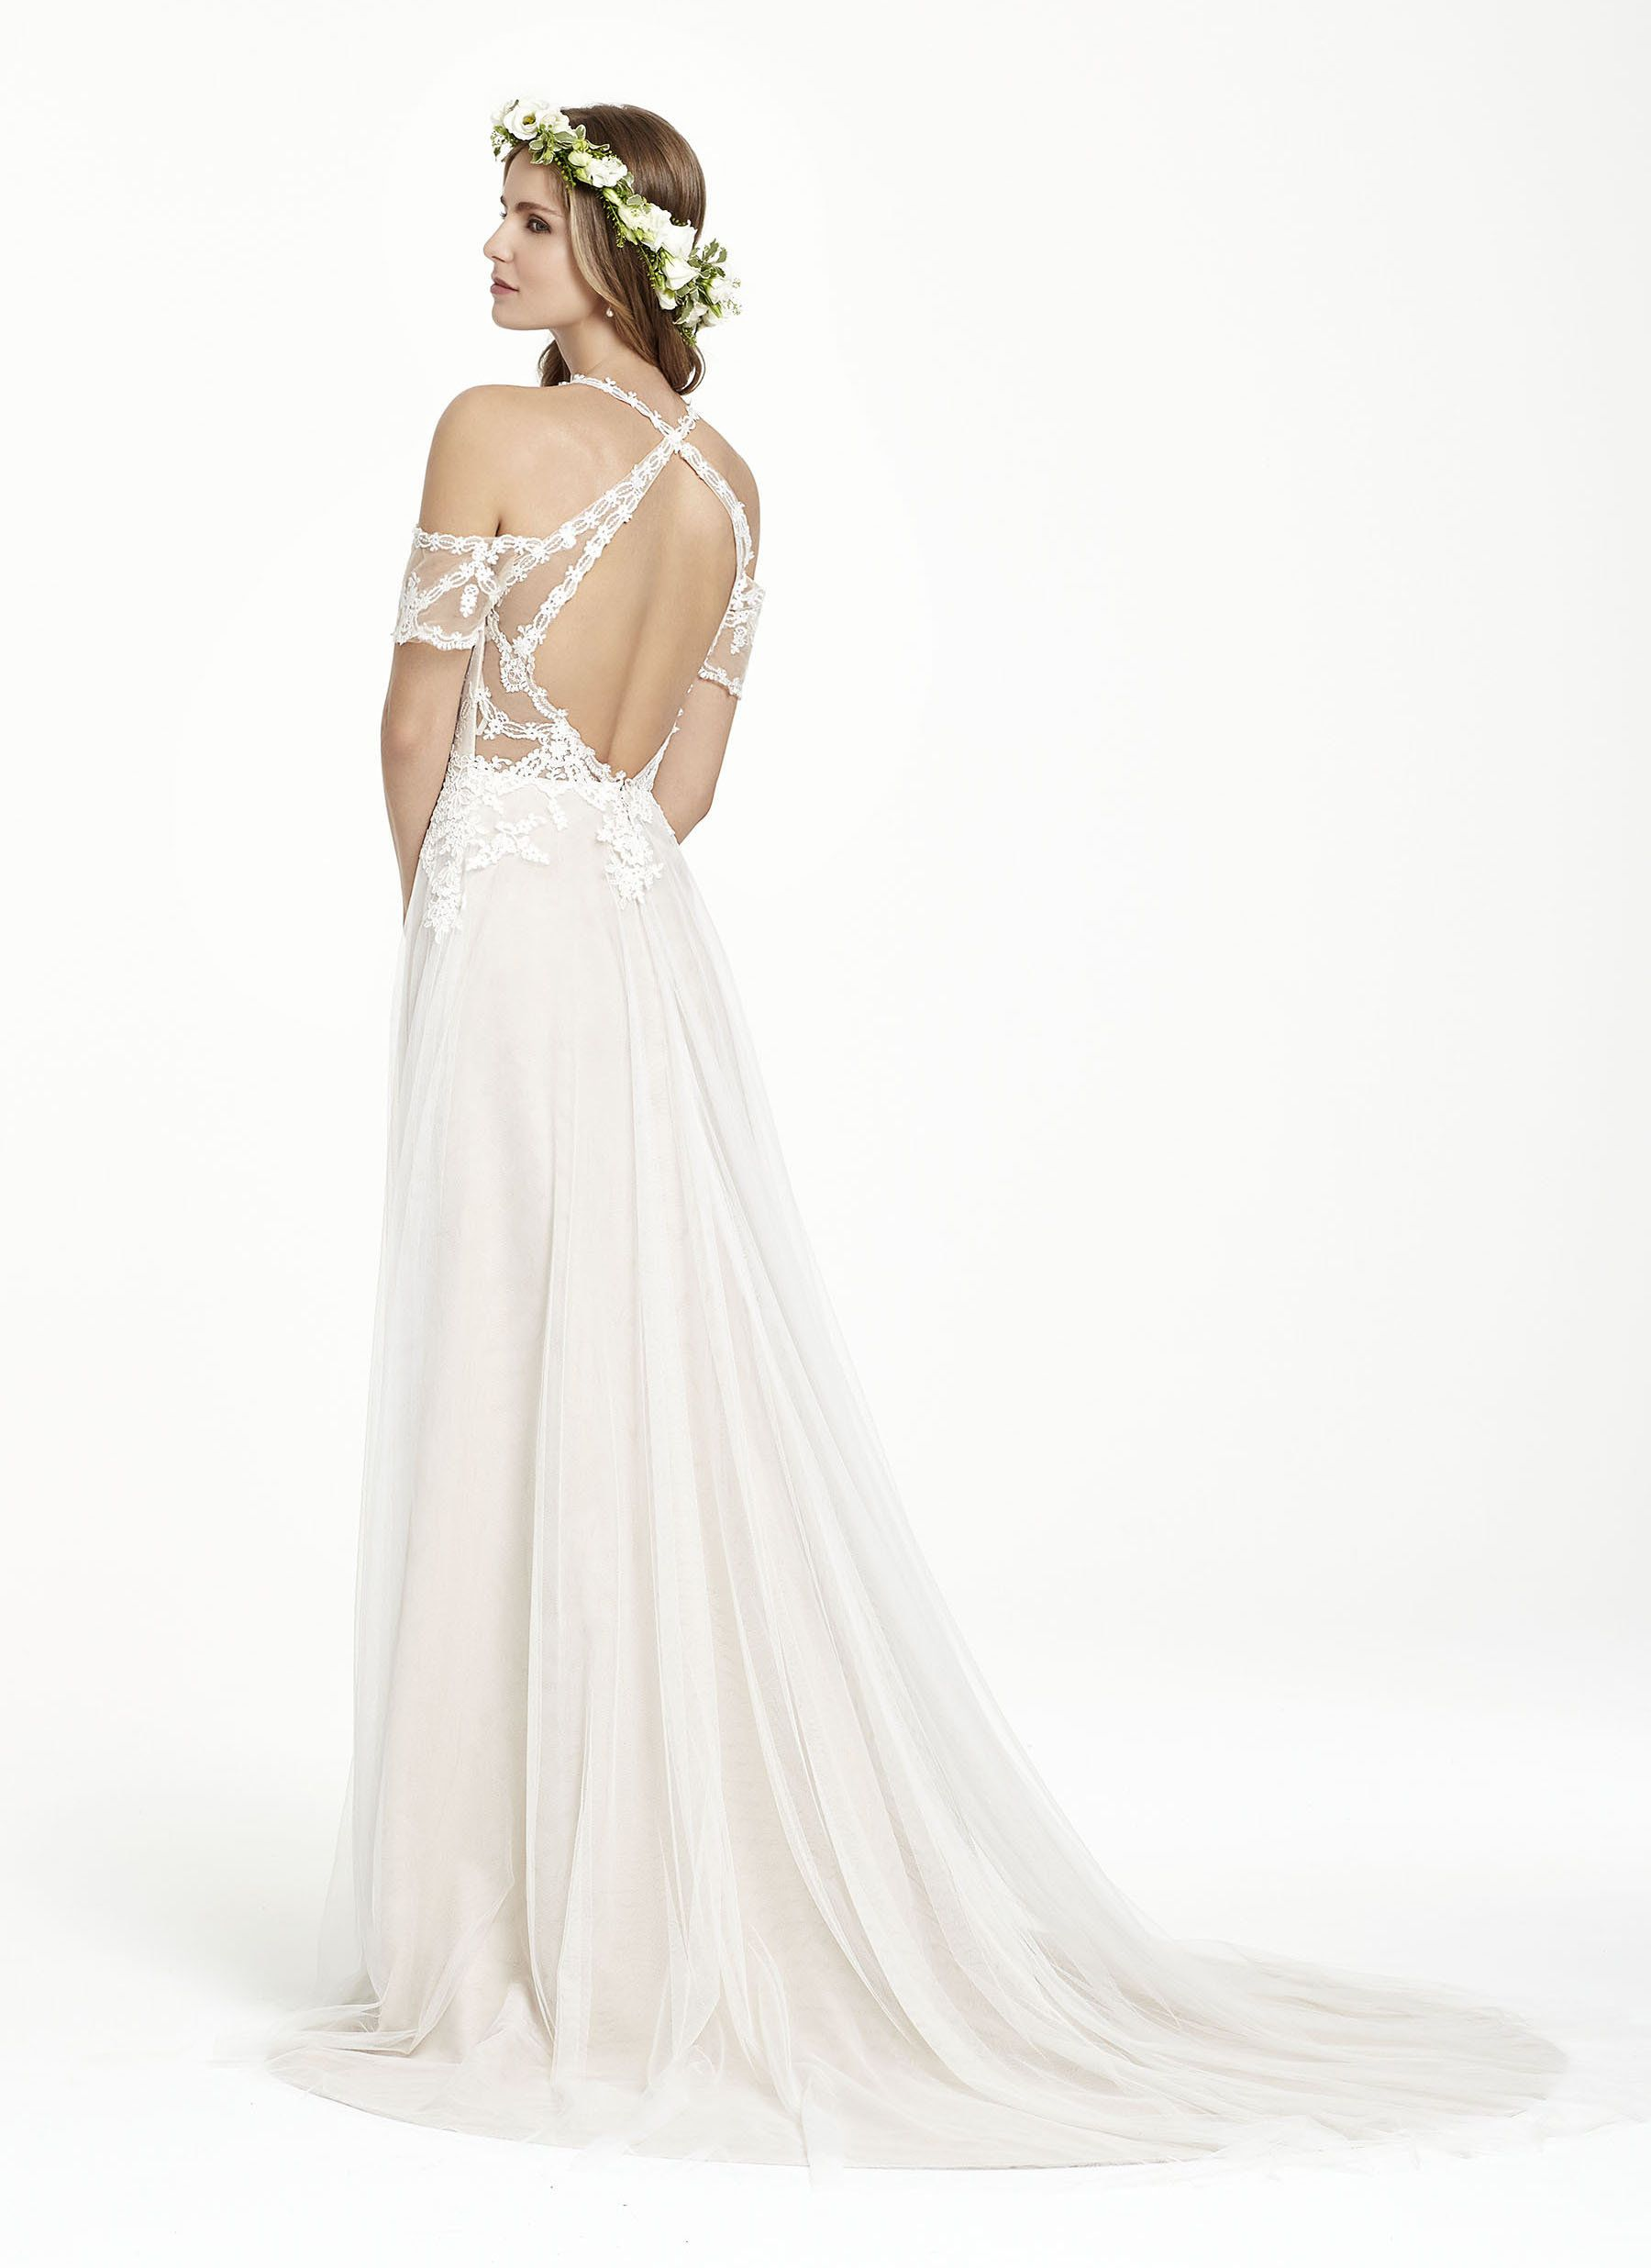 English net aline bridal gown sweetheart neckline with shoulder